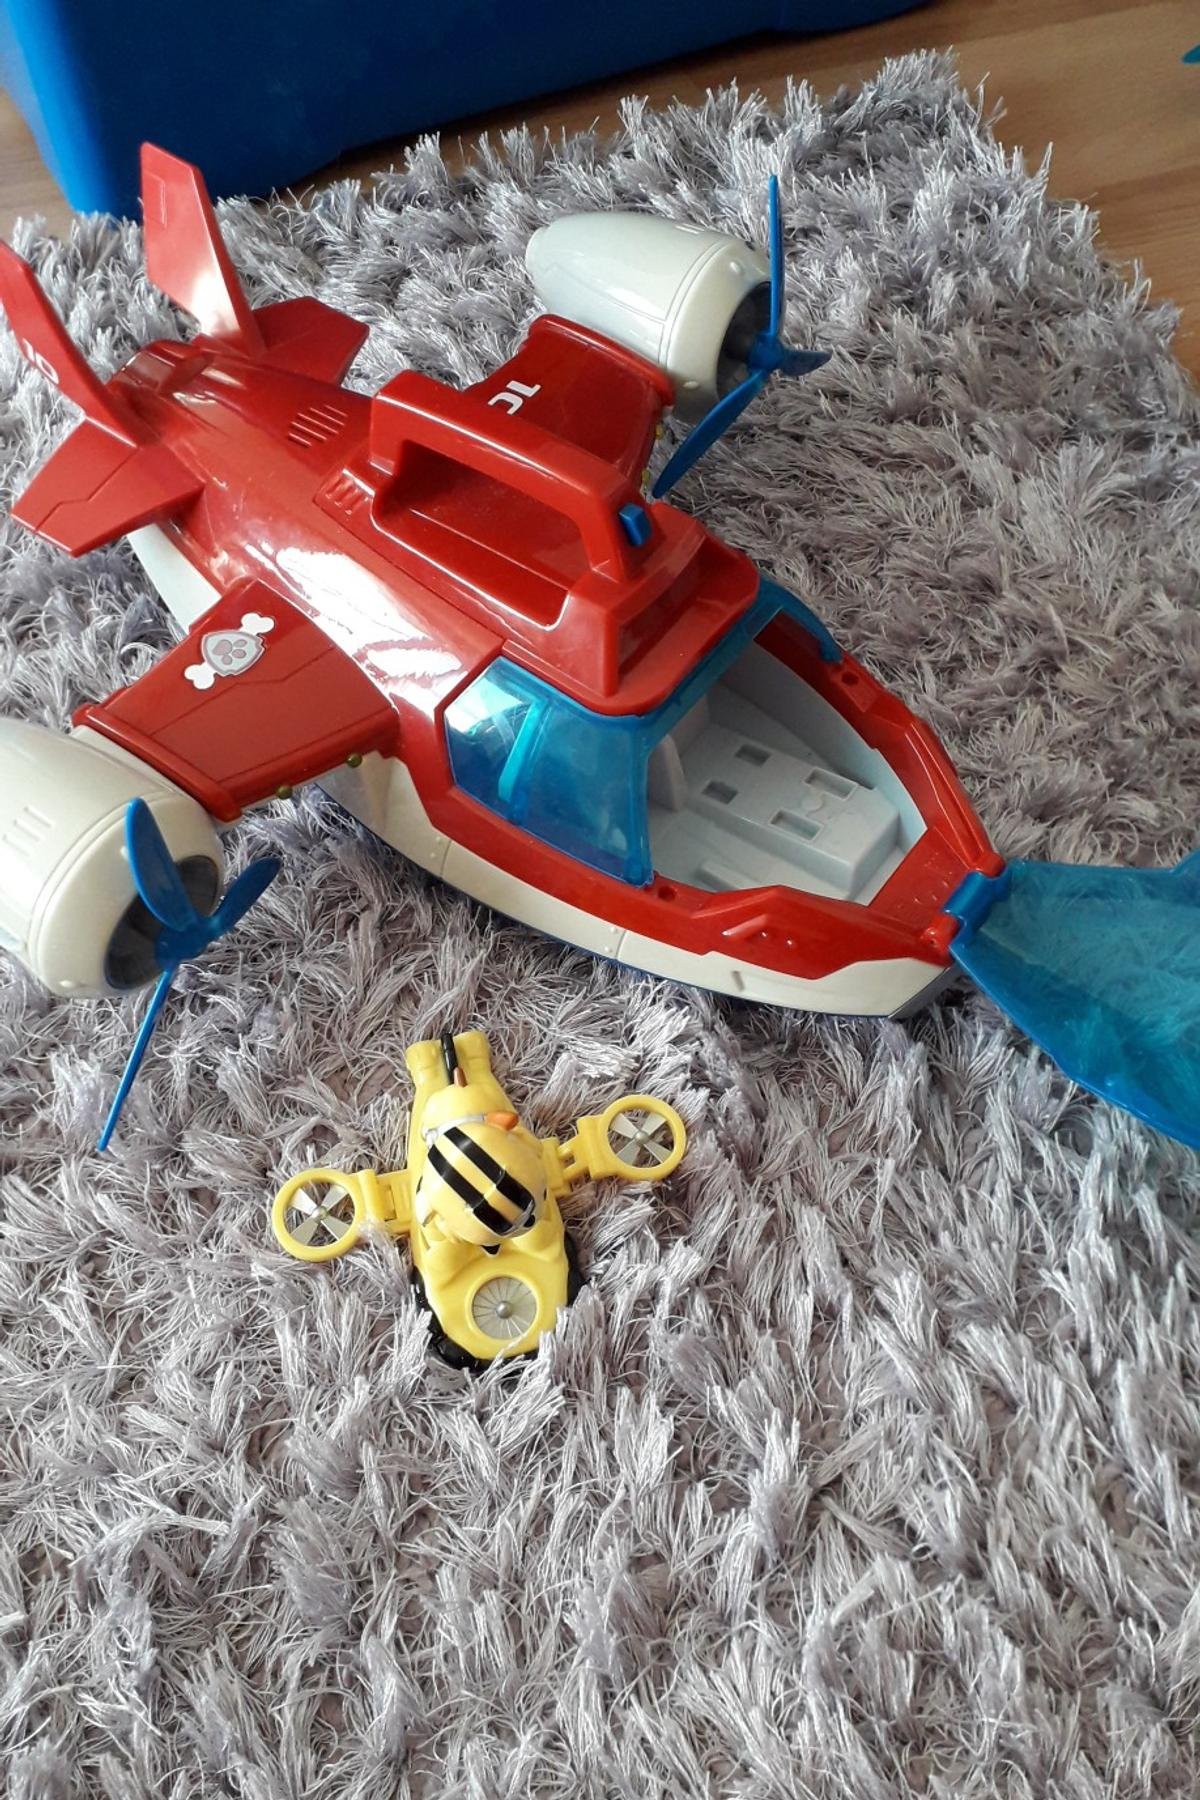 Air patroller with extra figure. Does have lights and sound but requires a new battery. From pet and smoke free home